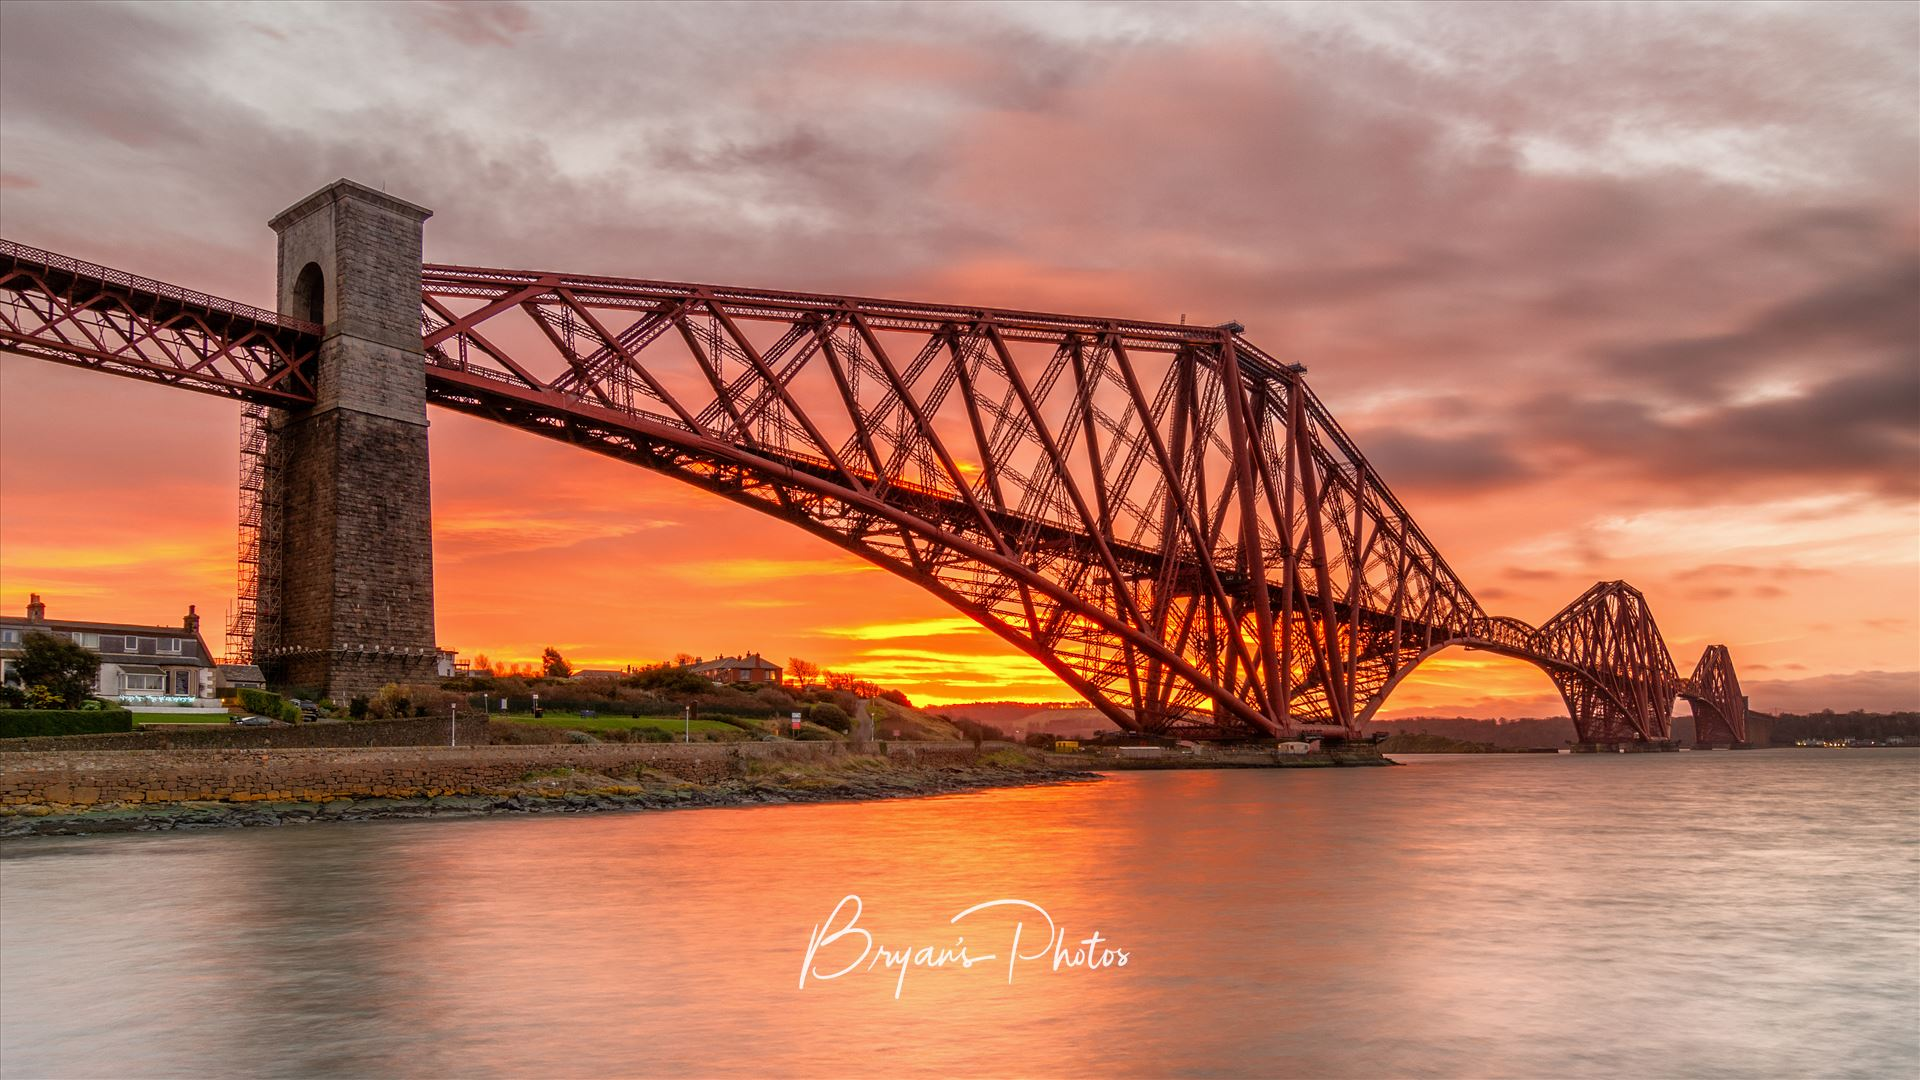 The Bridge at Sunrise A photograph of the Forth Rail Bridge taken at Sunrise from North Queensferry. by Bryans Photos